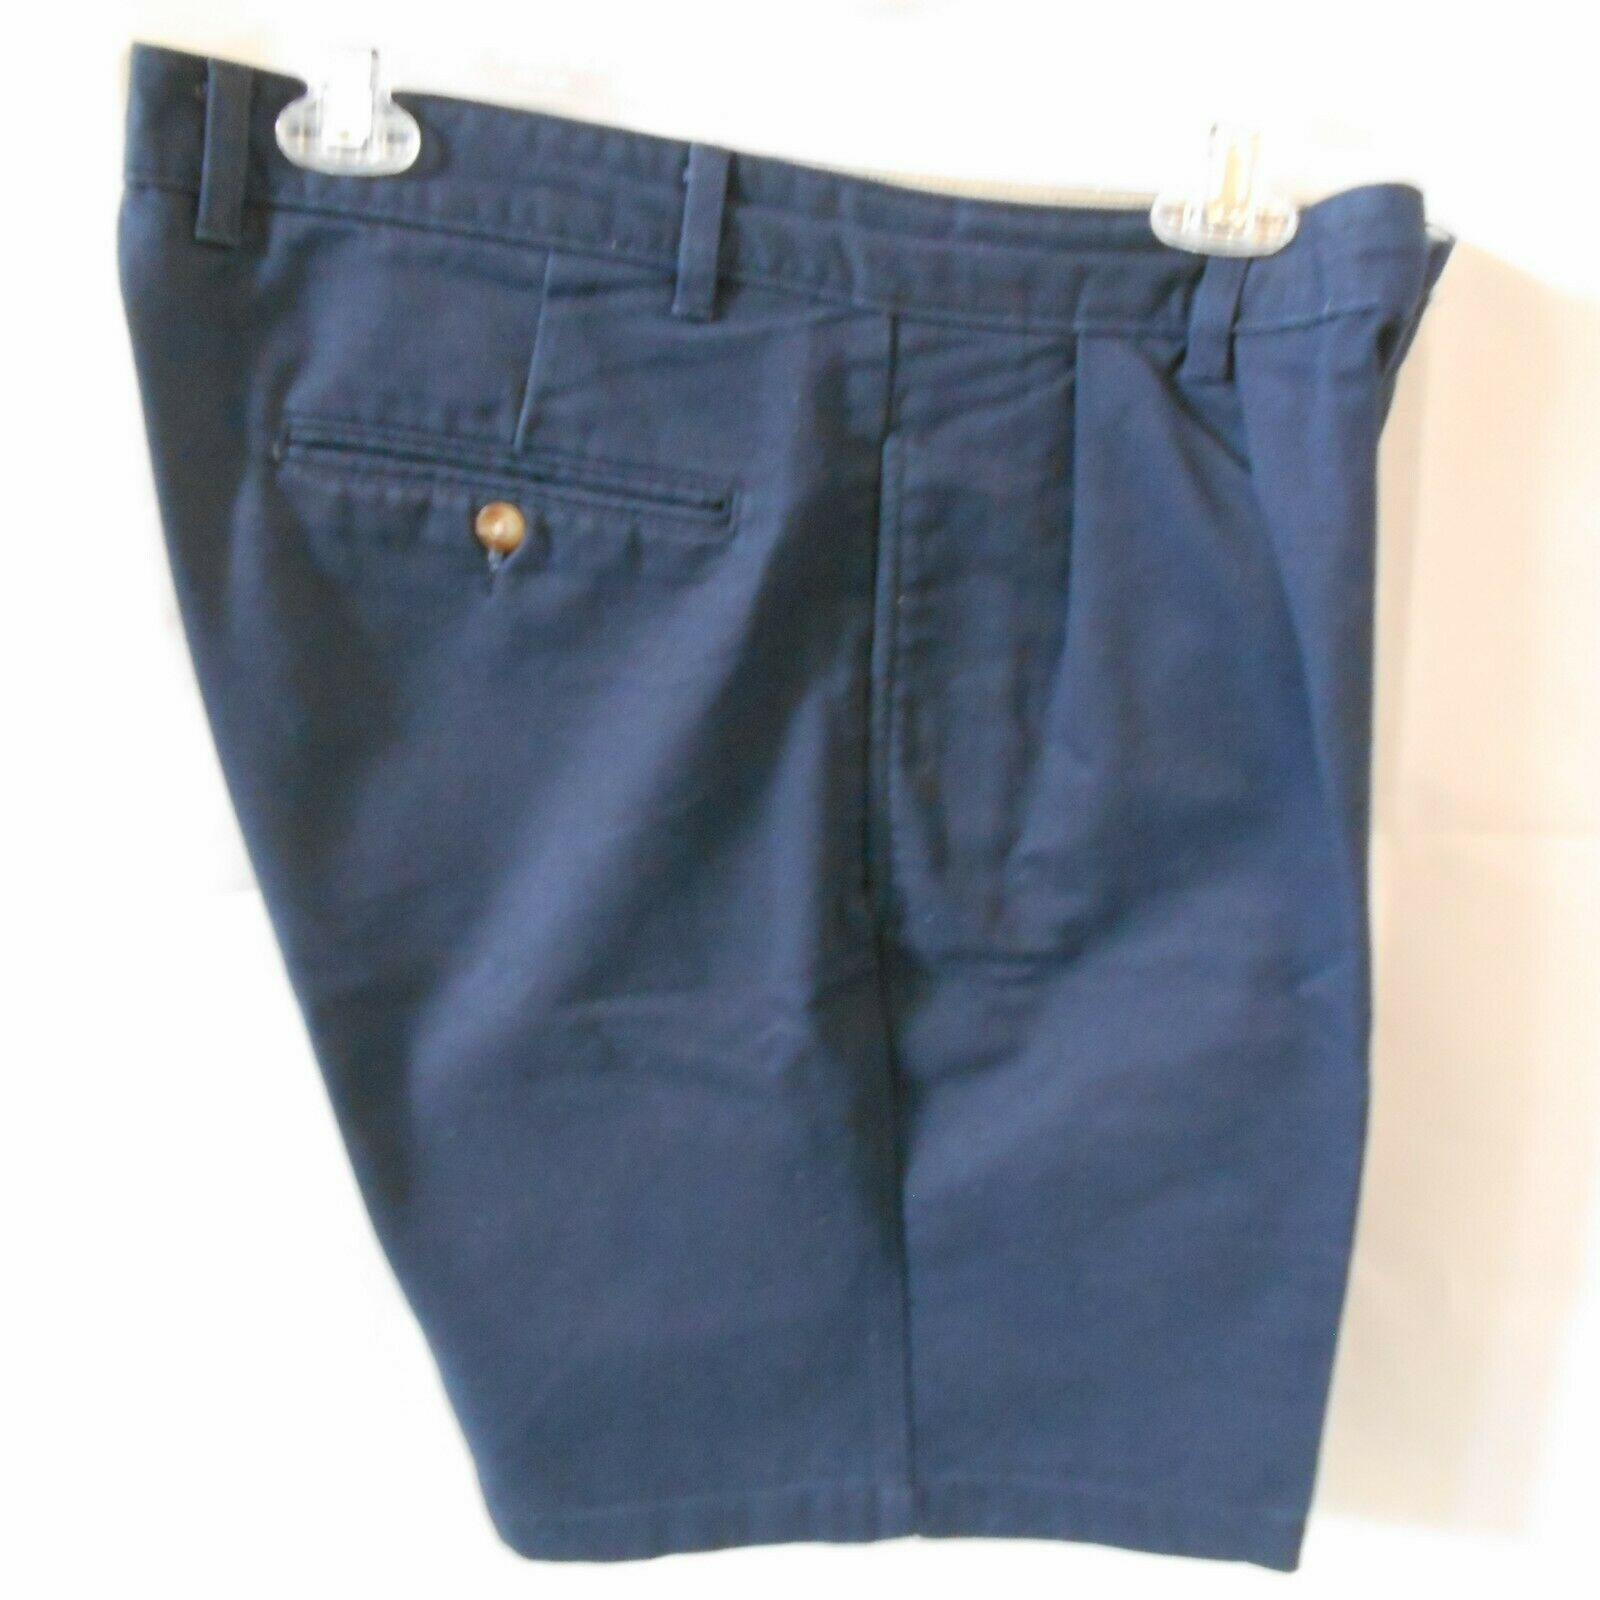 Roundtree and York Mens Shorts size 34 Navy Blue Cotton Pleated Front  image 7